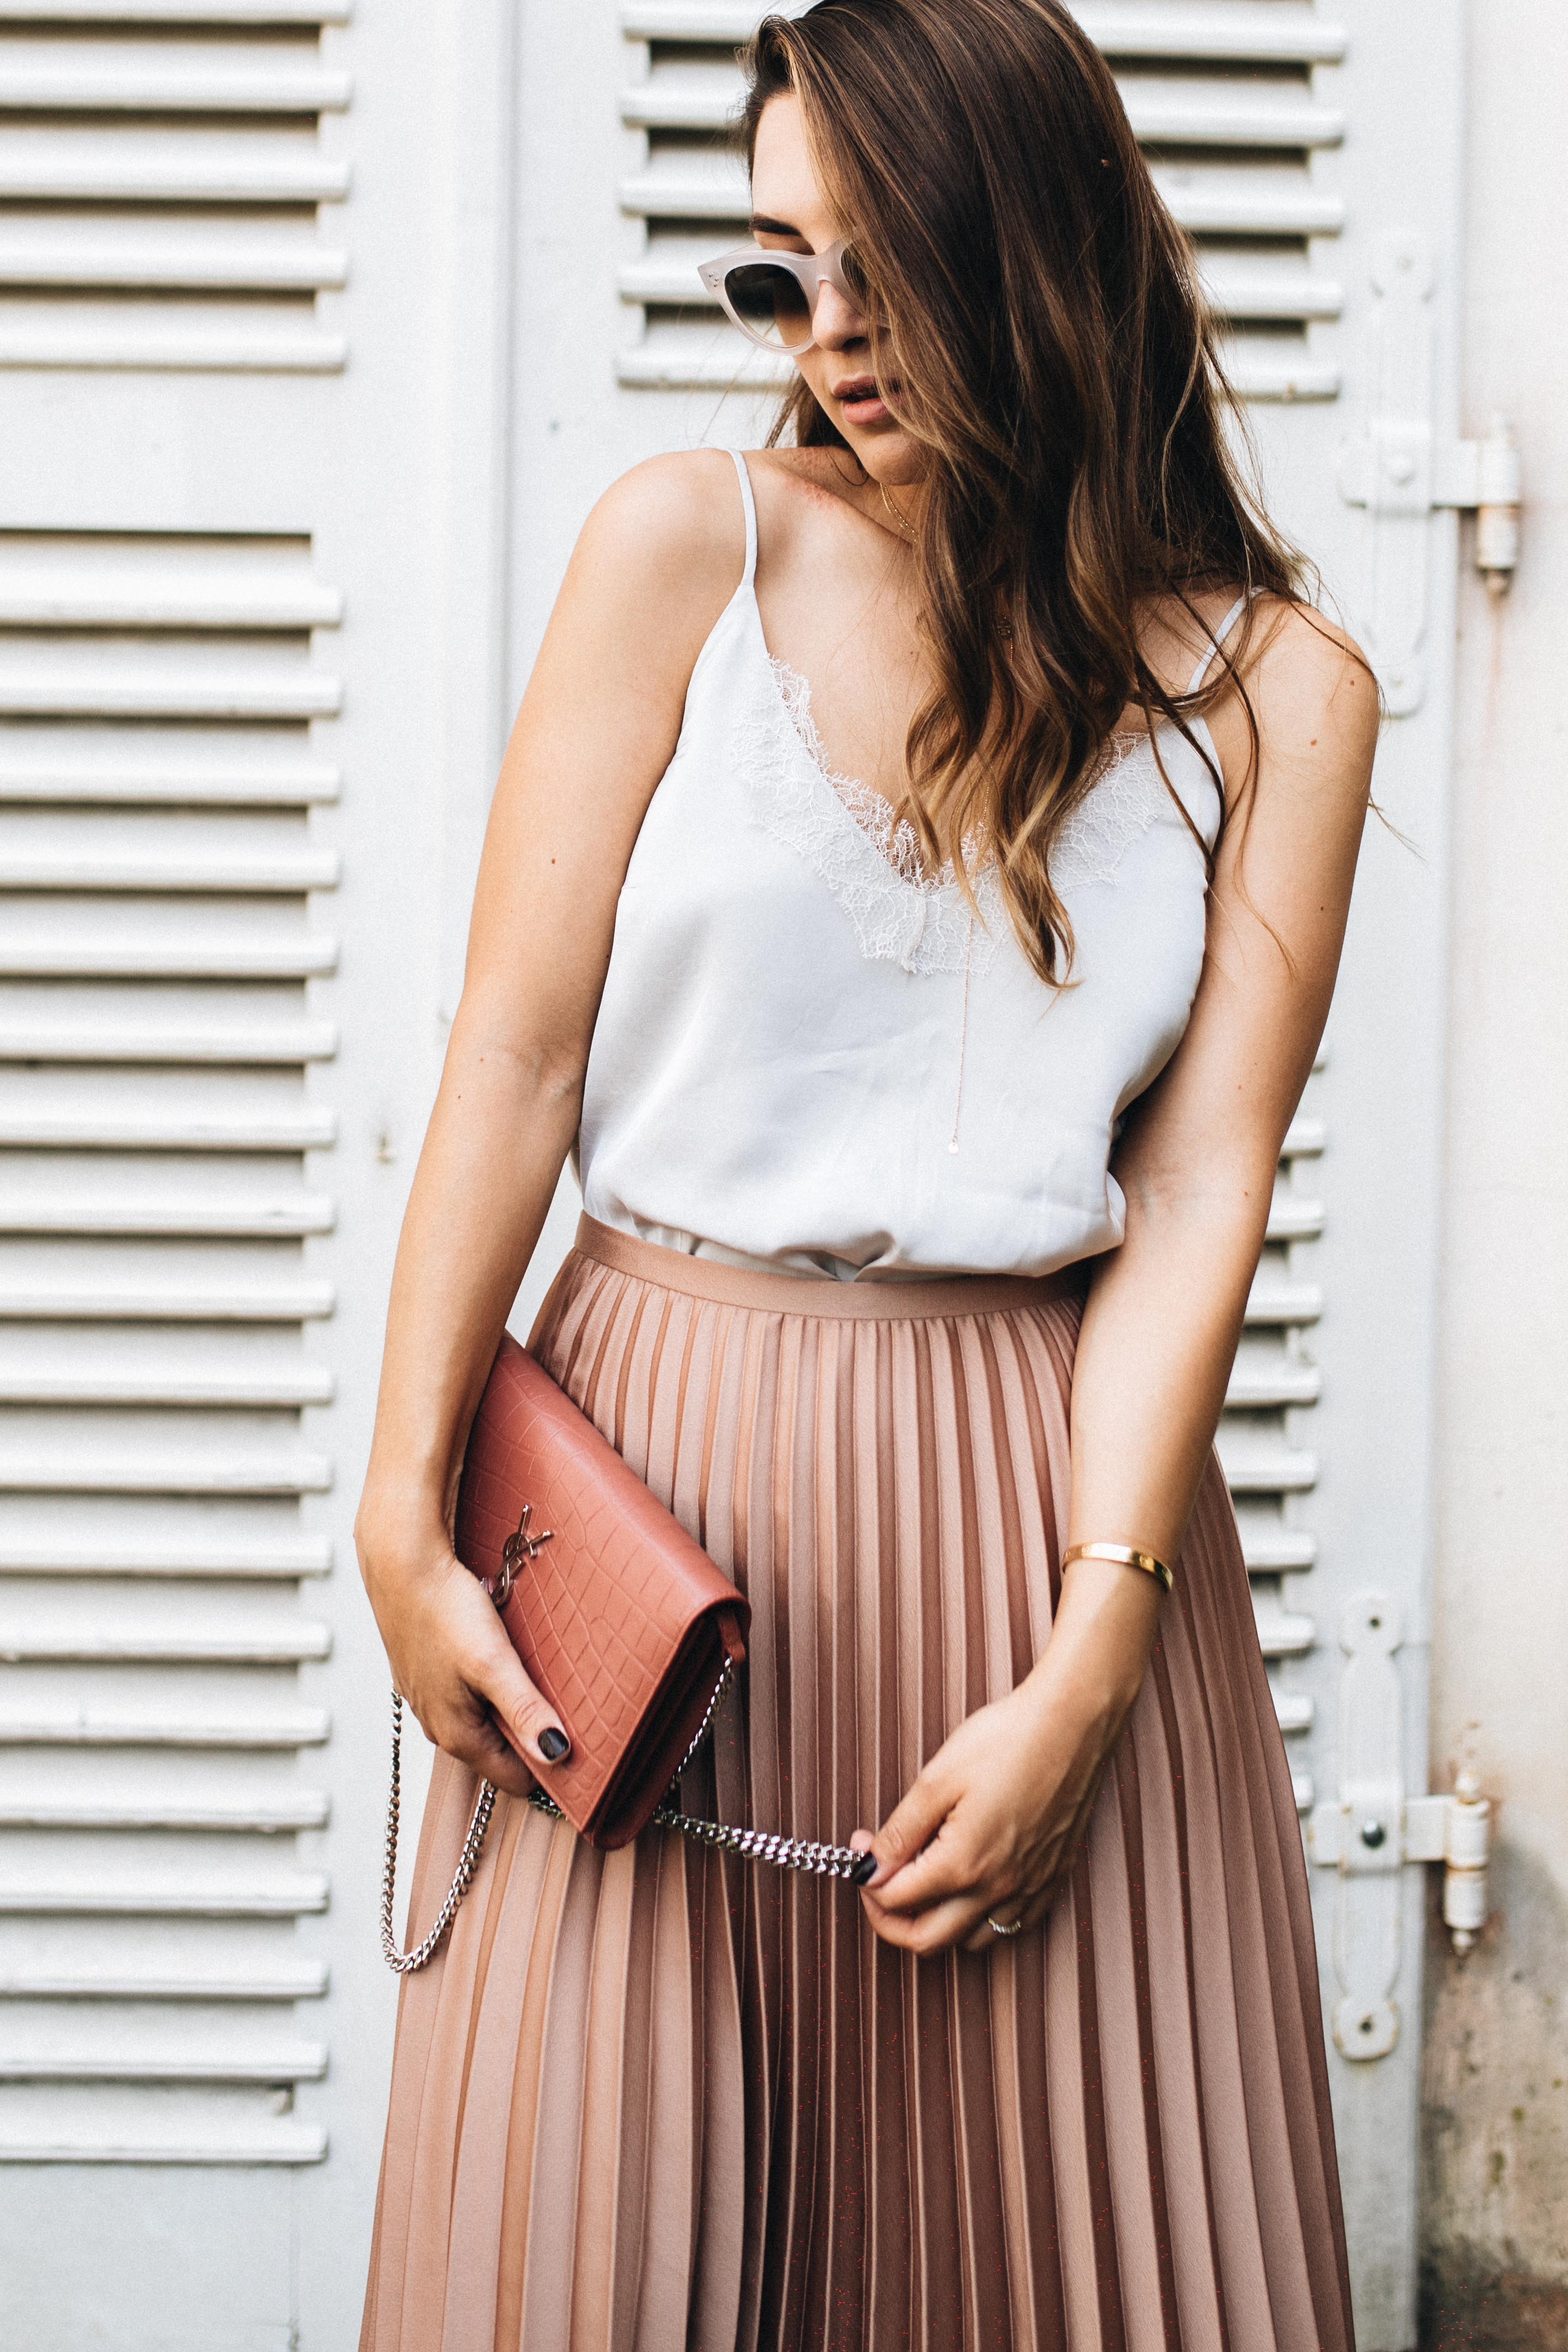 Outfit: How to wear plissé skirts during the day | YSL chain wallet, Hallhuber plissé skirt, Steve Madden espadrilles, Marc O'Polo silk camisole | you rock my life